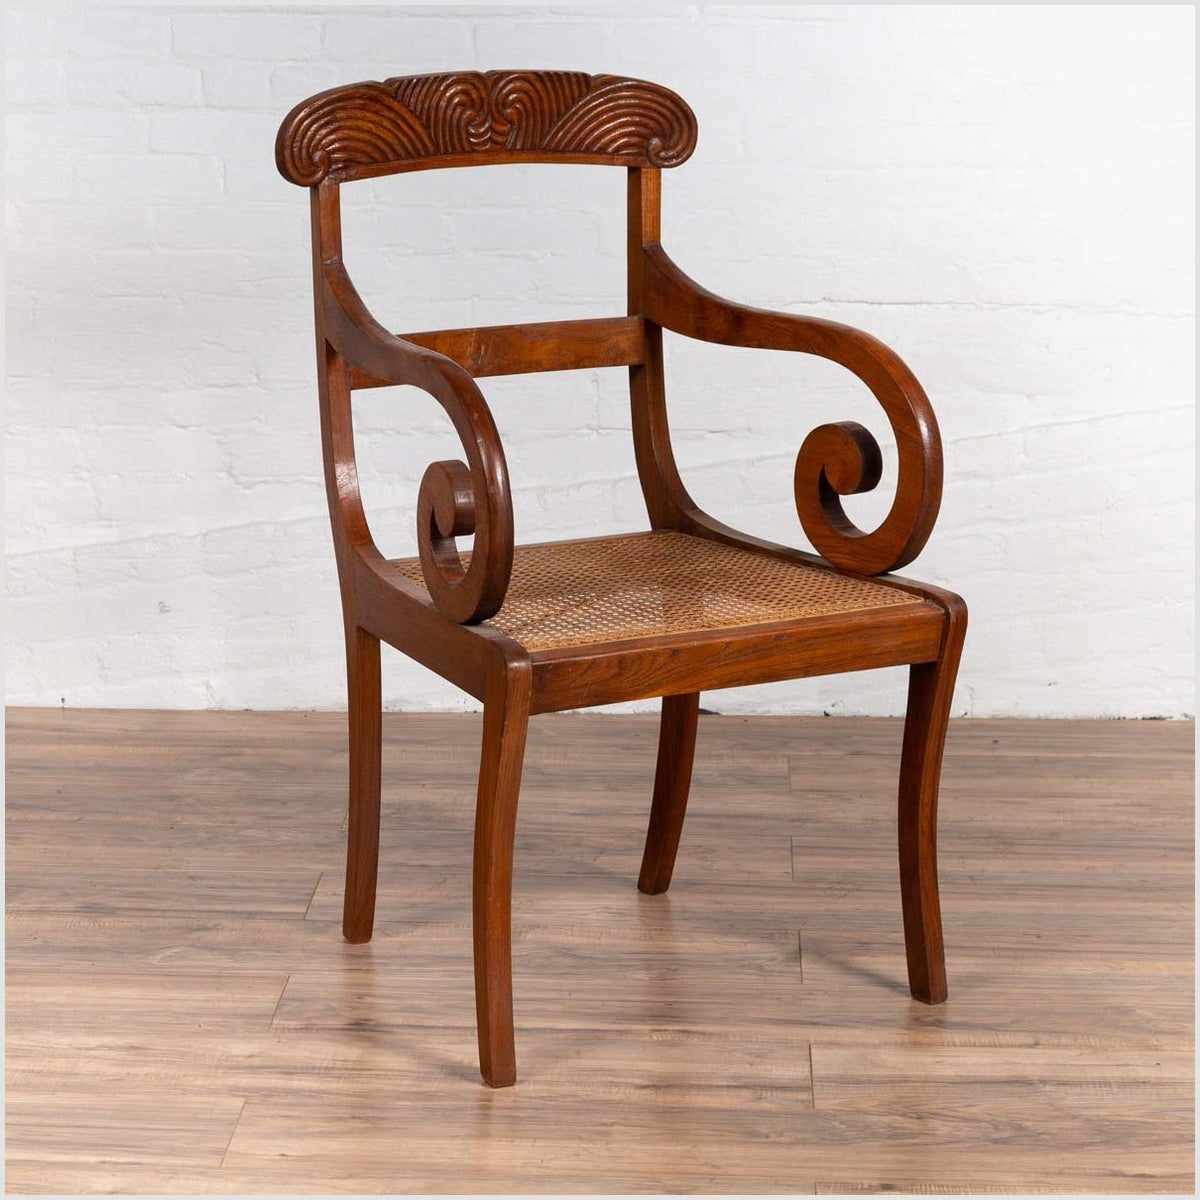 Javanese Antique Armchair with Carved Rail, Woven Rattan Seat and Curving Arms